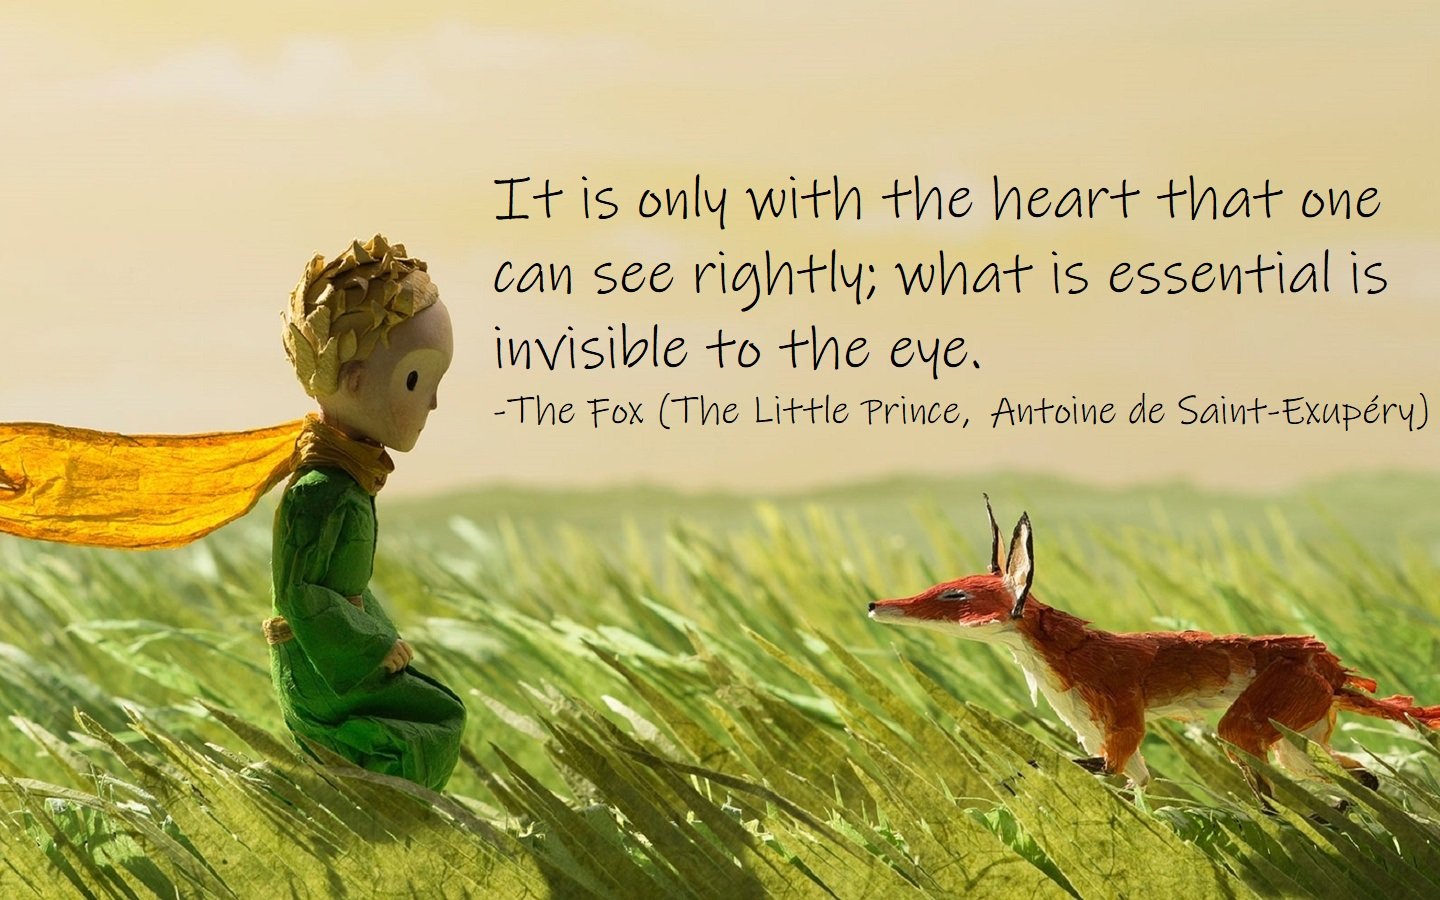 """It is only with the heart one can see rightly; what is essential is invisible to the eye."" –The Fox/Antoine de Saint-Exupéry [1440×900]"